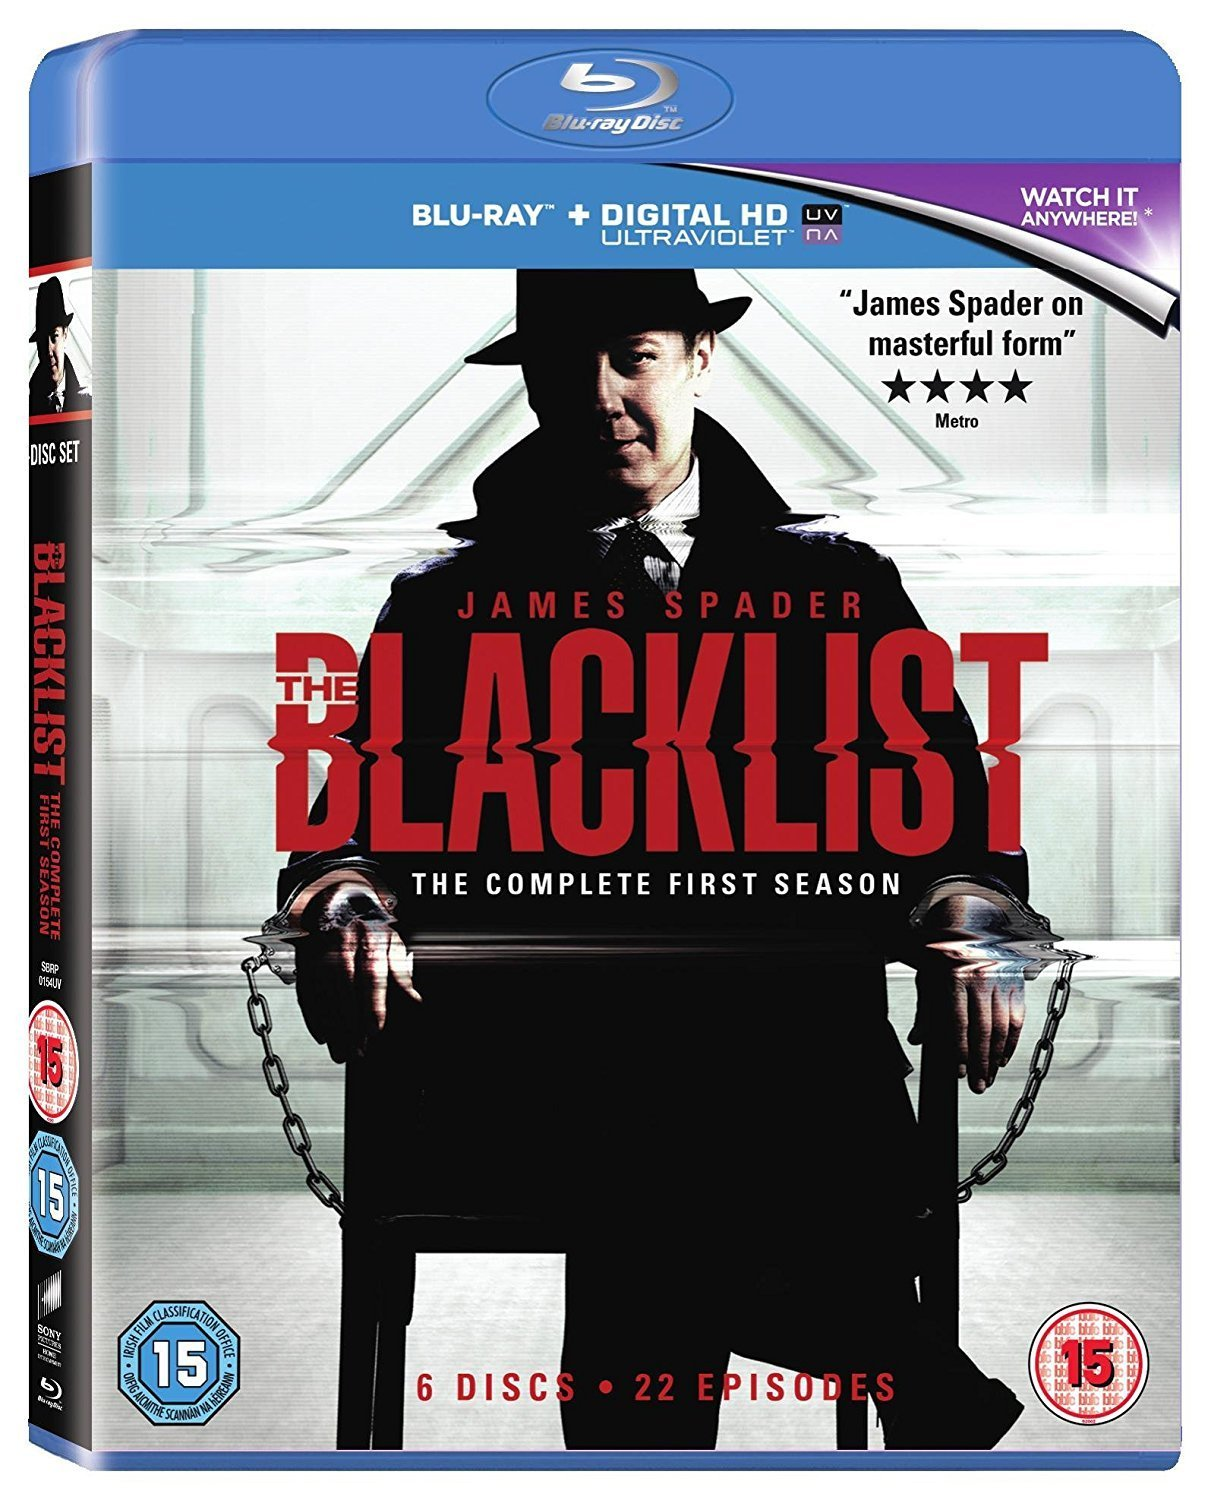 The Blacklist - Season 1 (Blu-ray + UV)